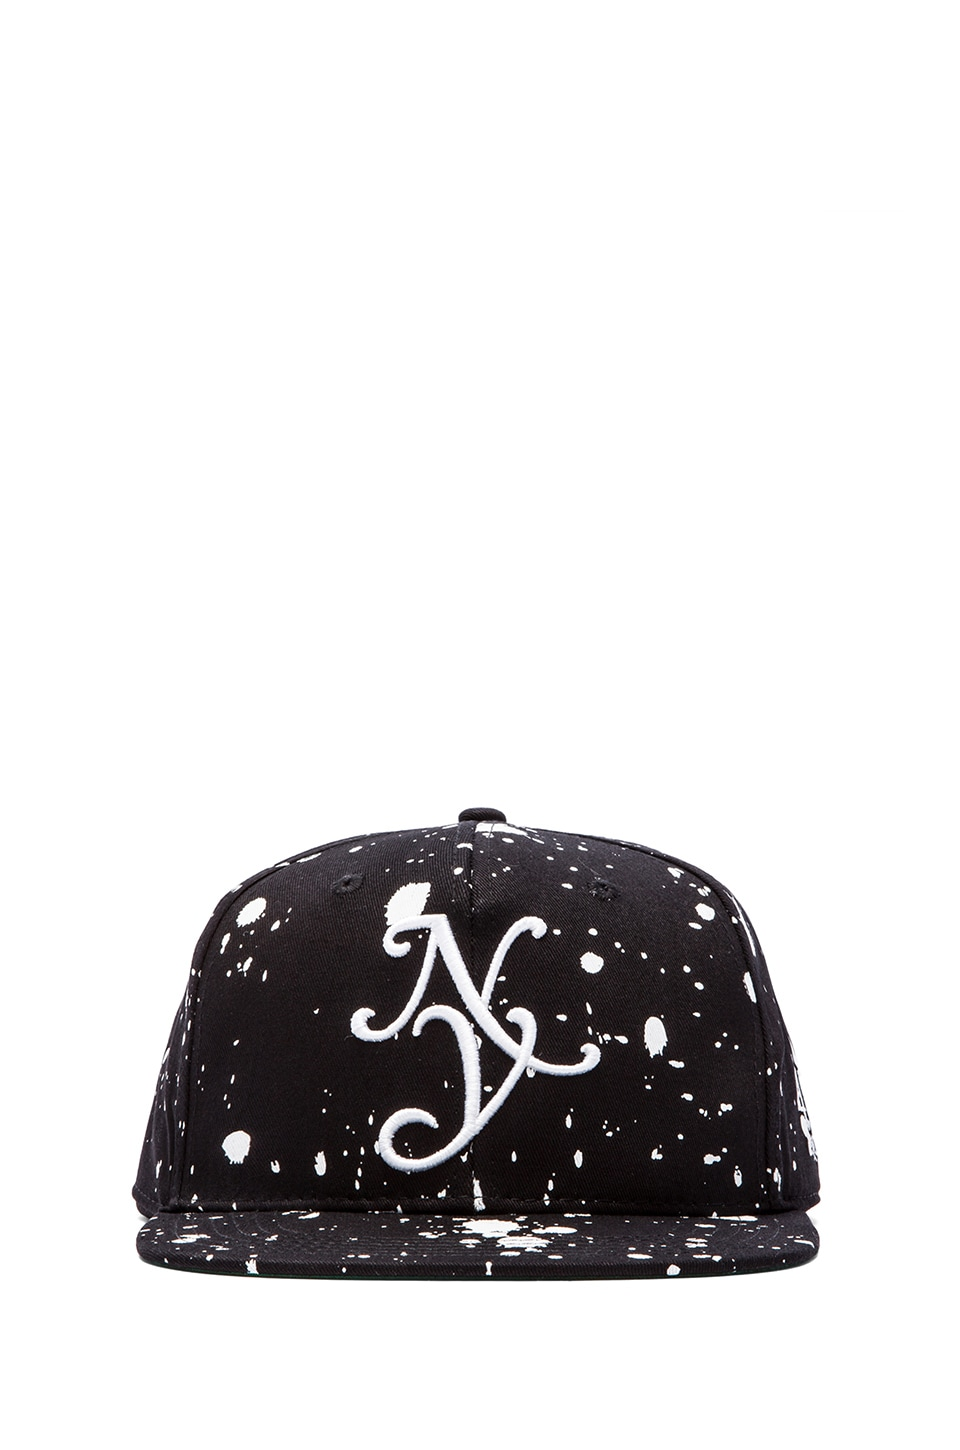 40 OZ NY Splatter Cap in Black